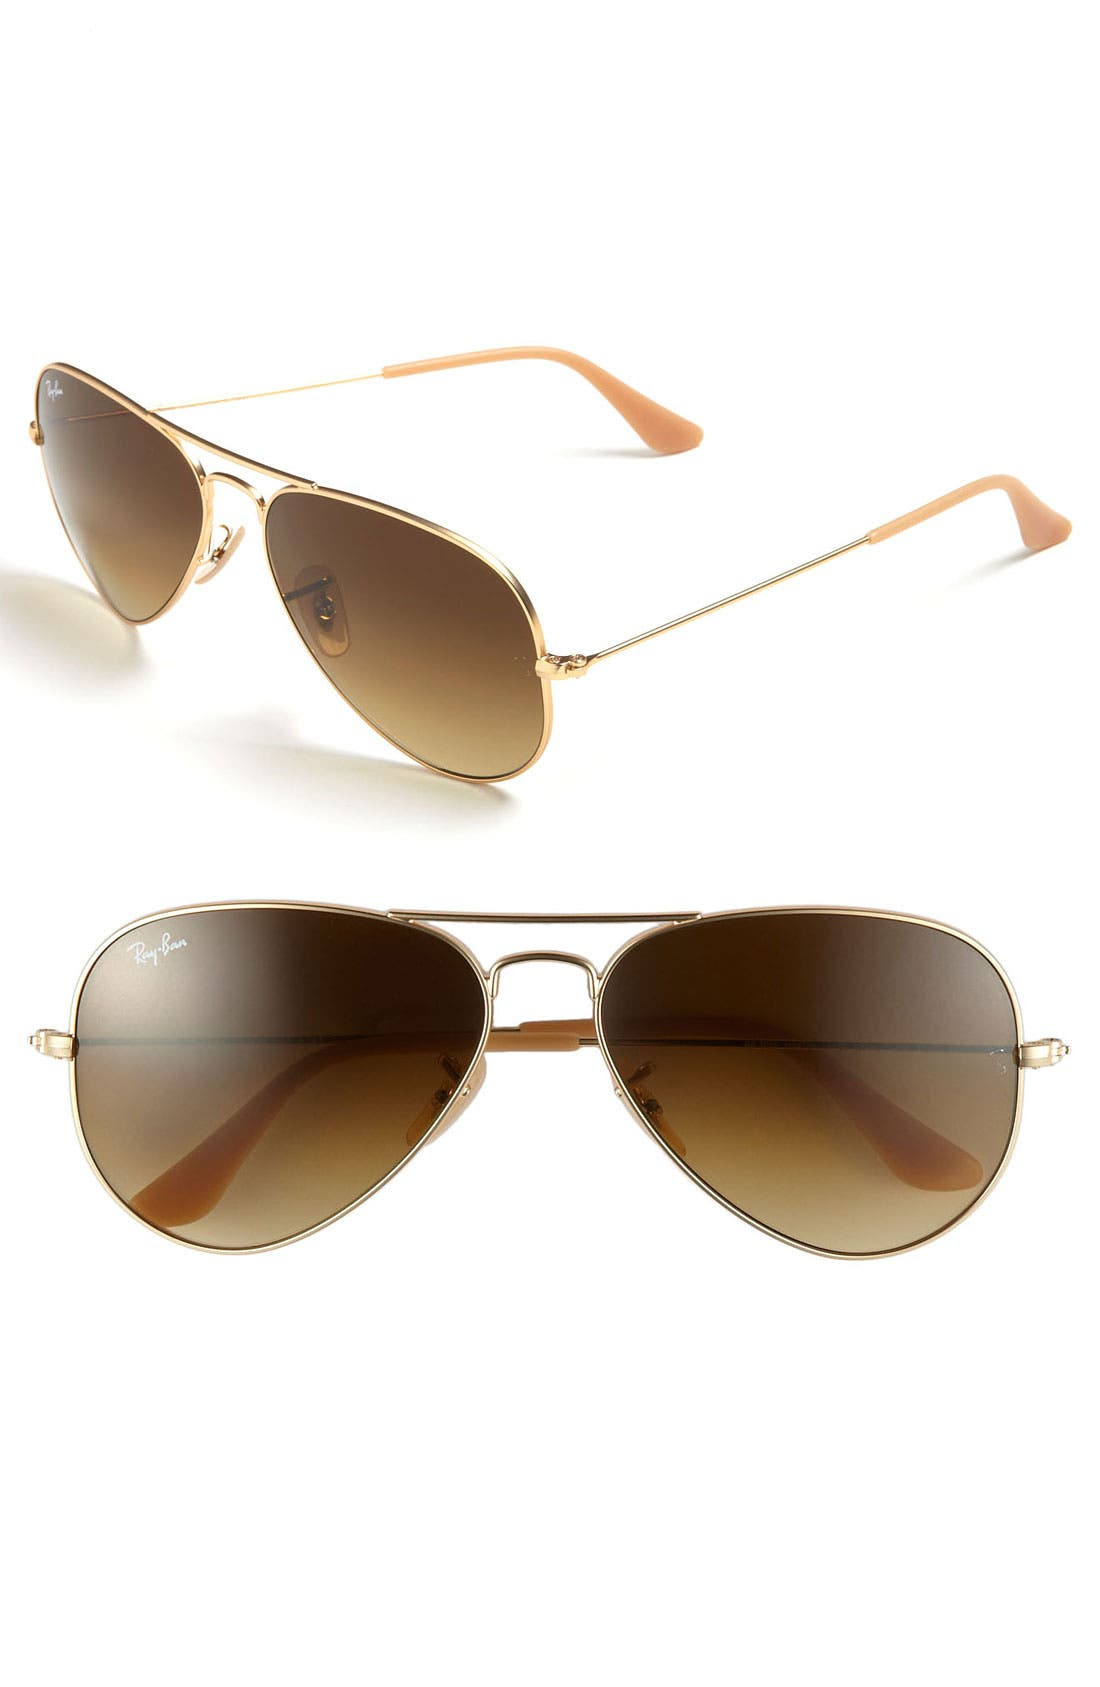 Standard Original 58mm Aviator Sunglasses,                             Main thumbnail 1, color,                             BROWN